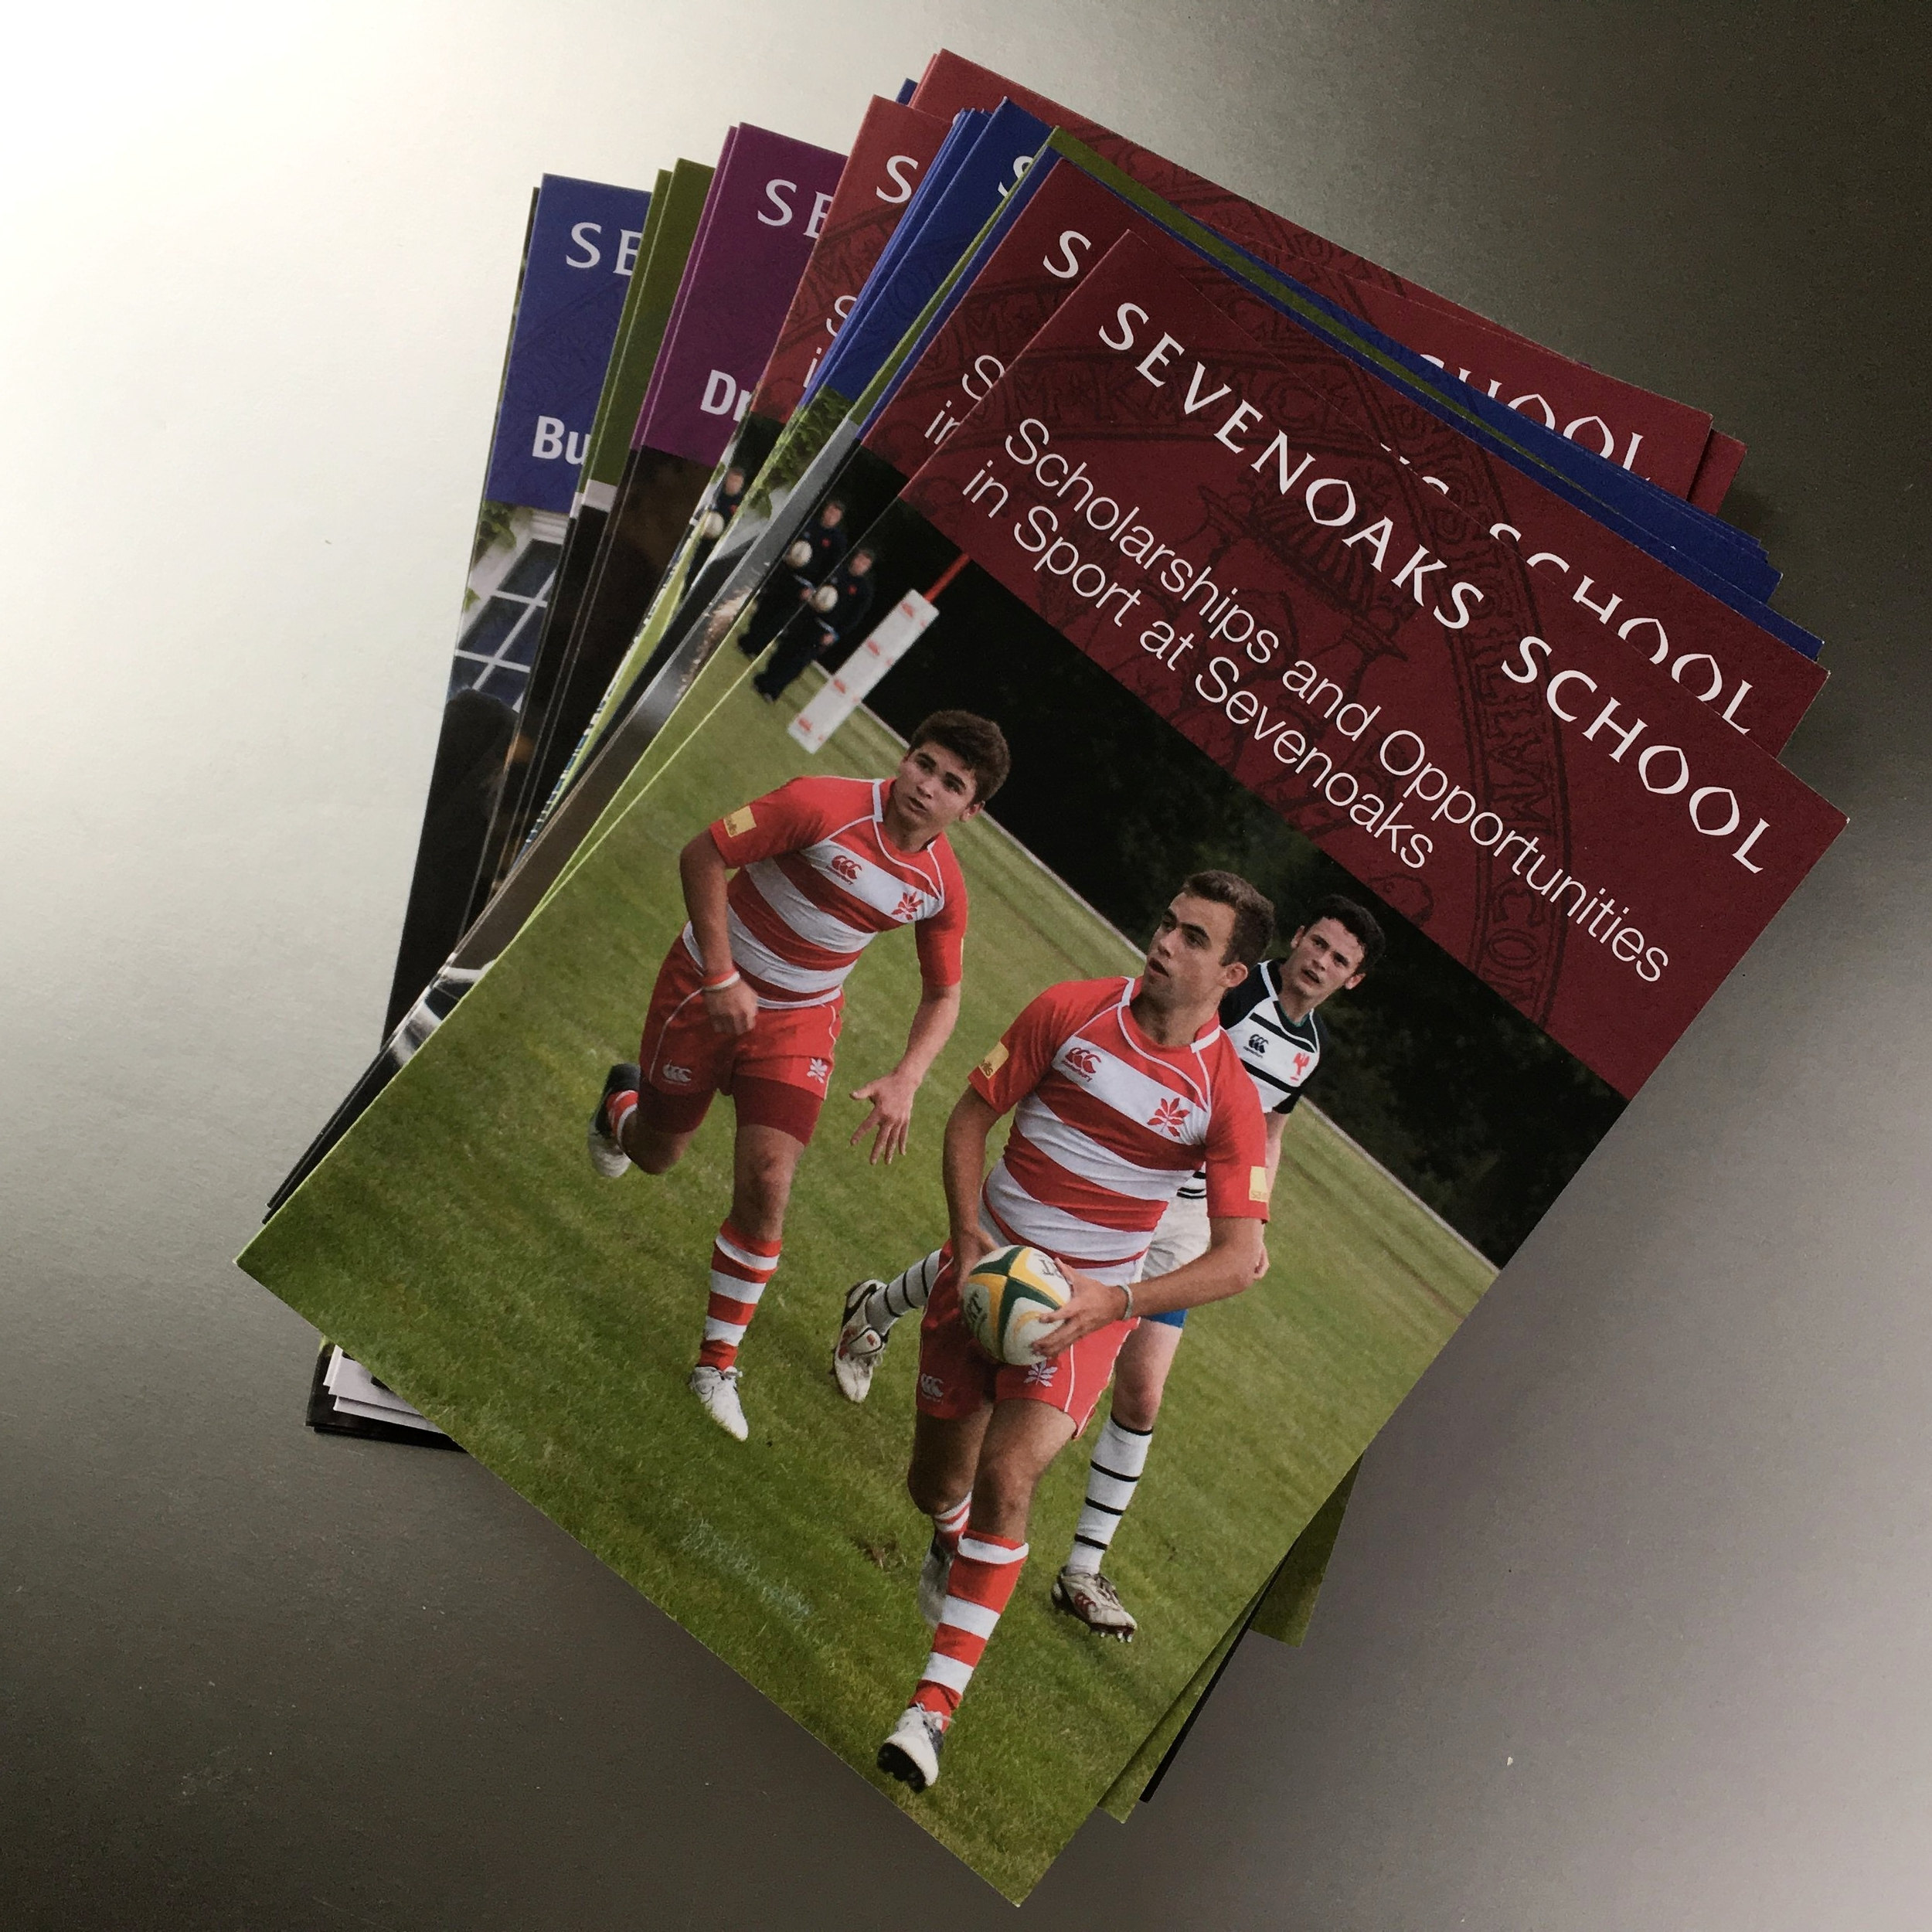 Sevenoaks School information literature